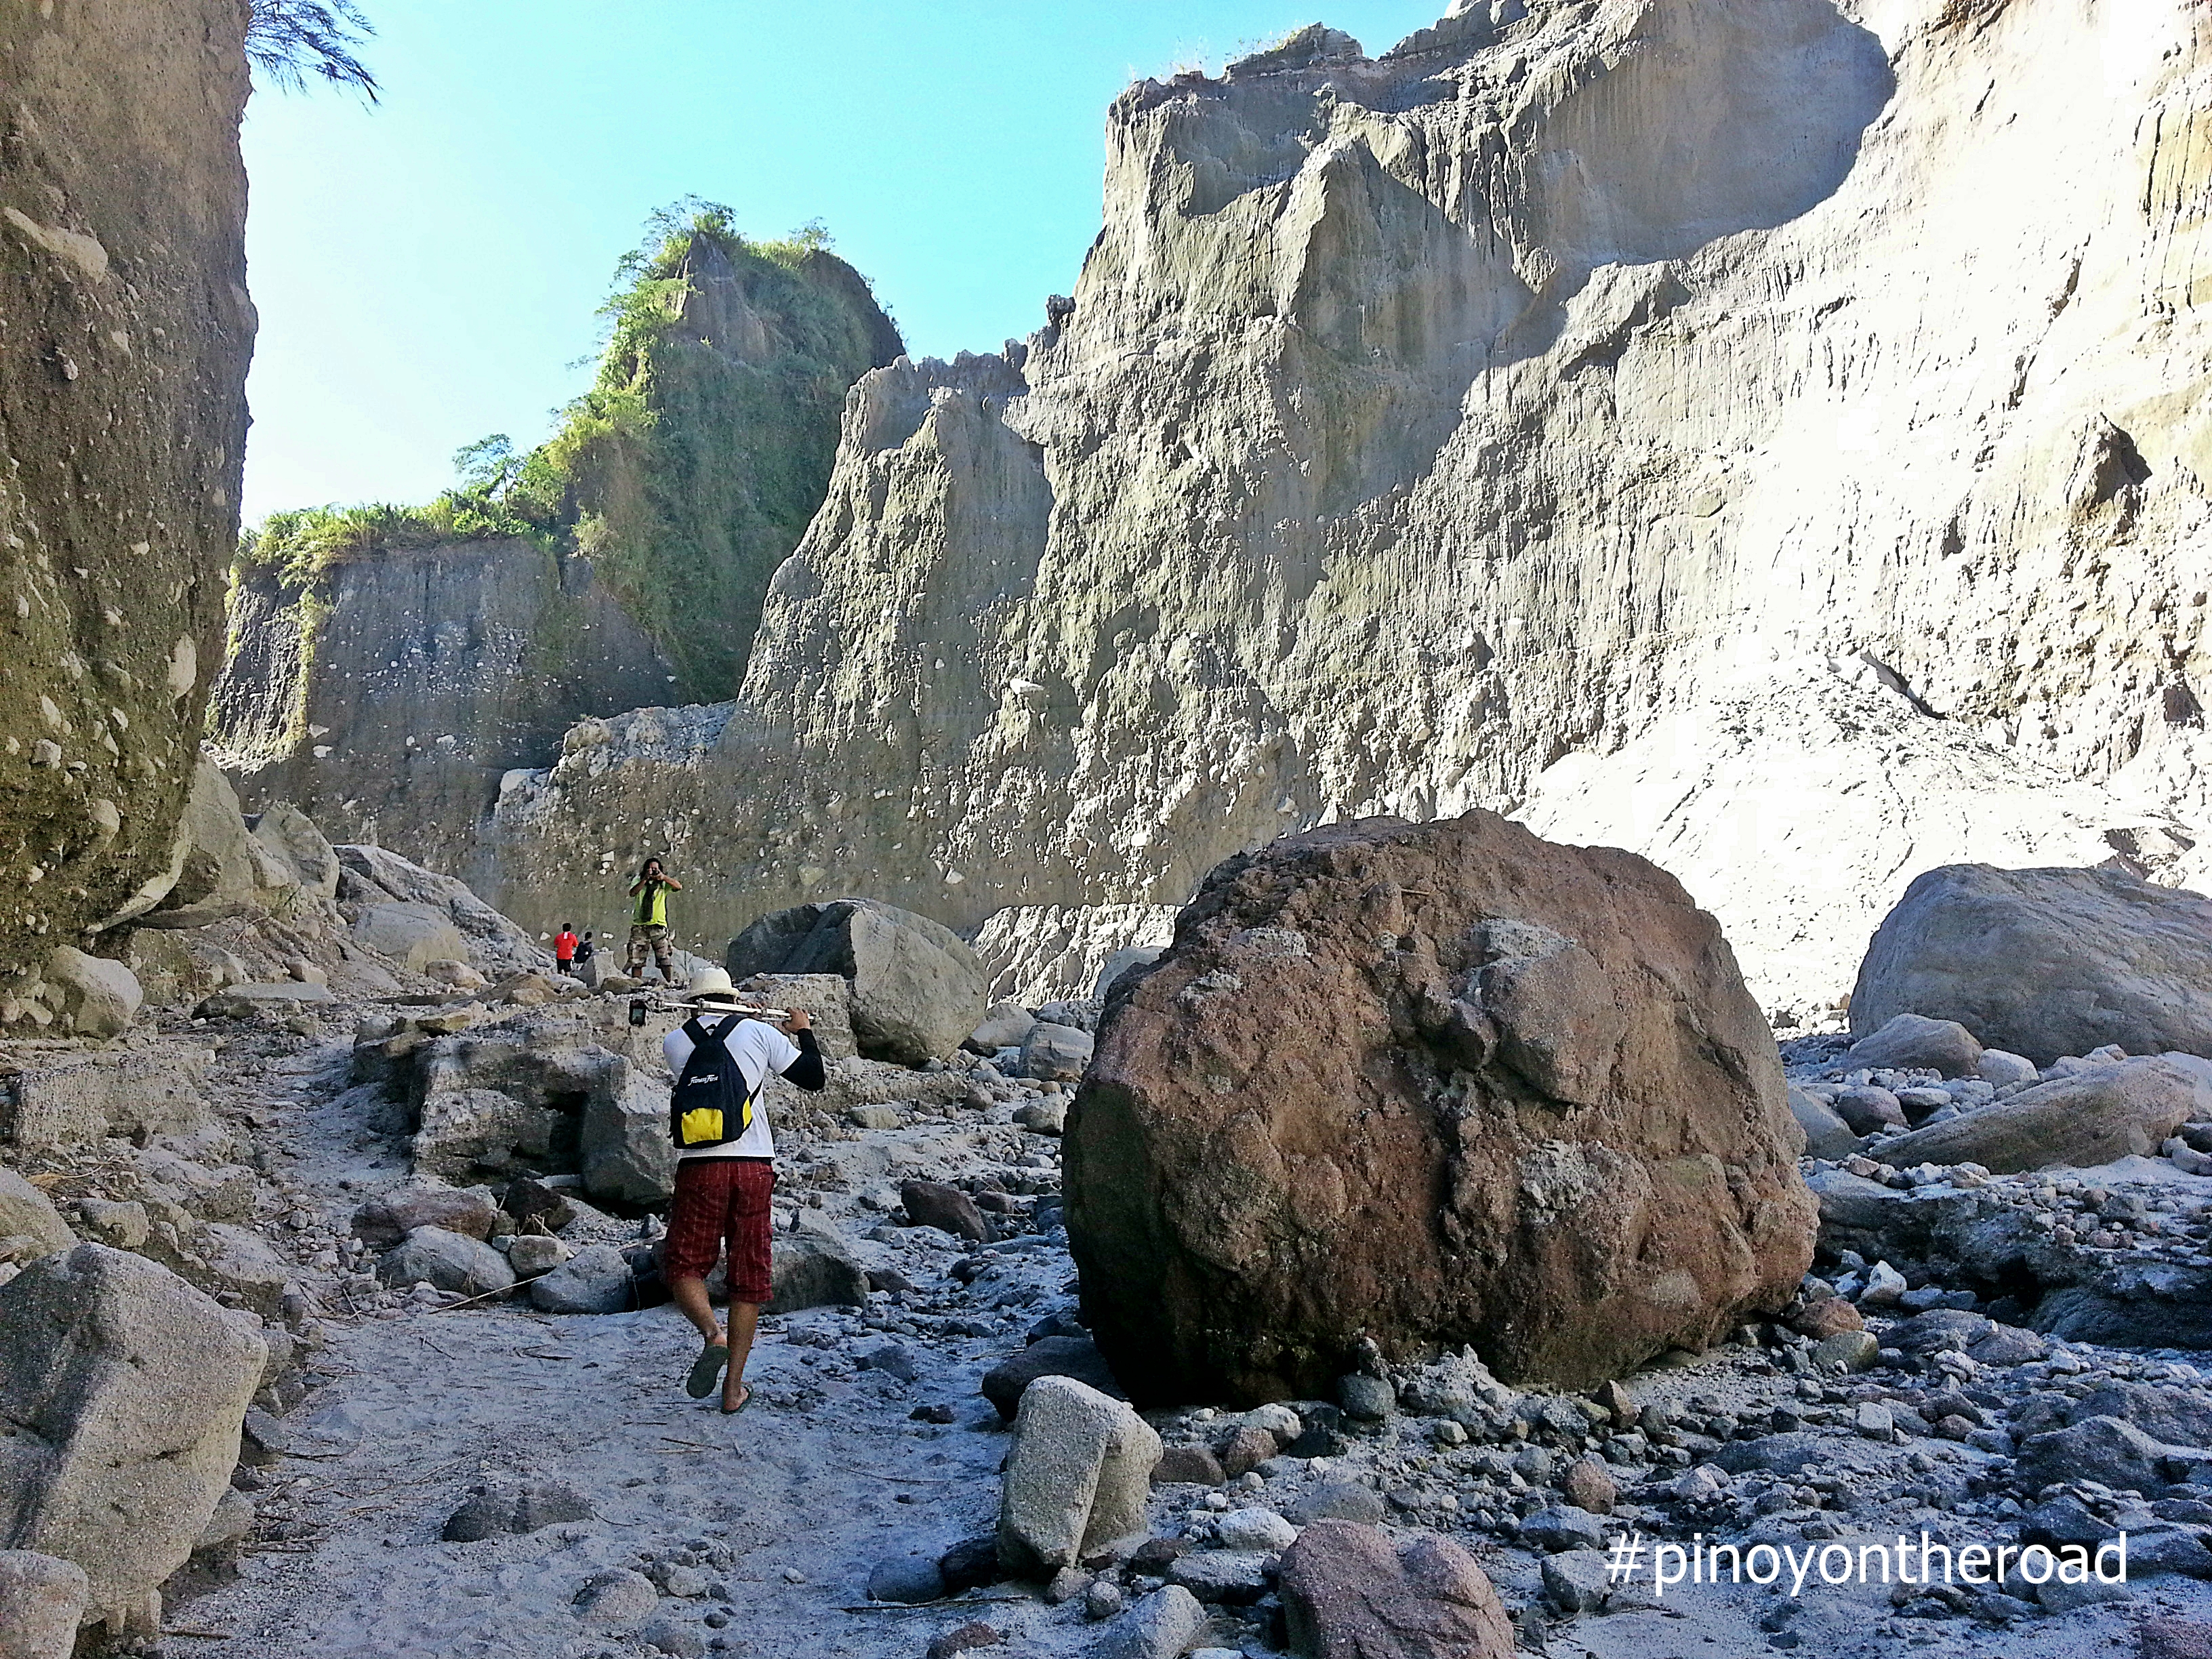 mt pinatubo trek is worth every step  zambales mt pinatubo trek 2012 photo essay pinoy on the